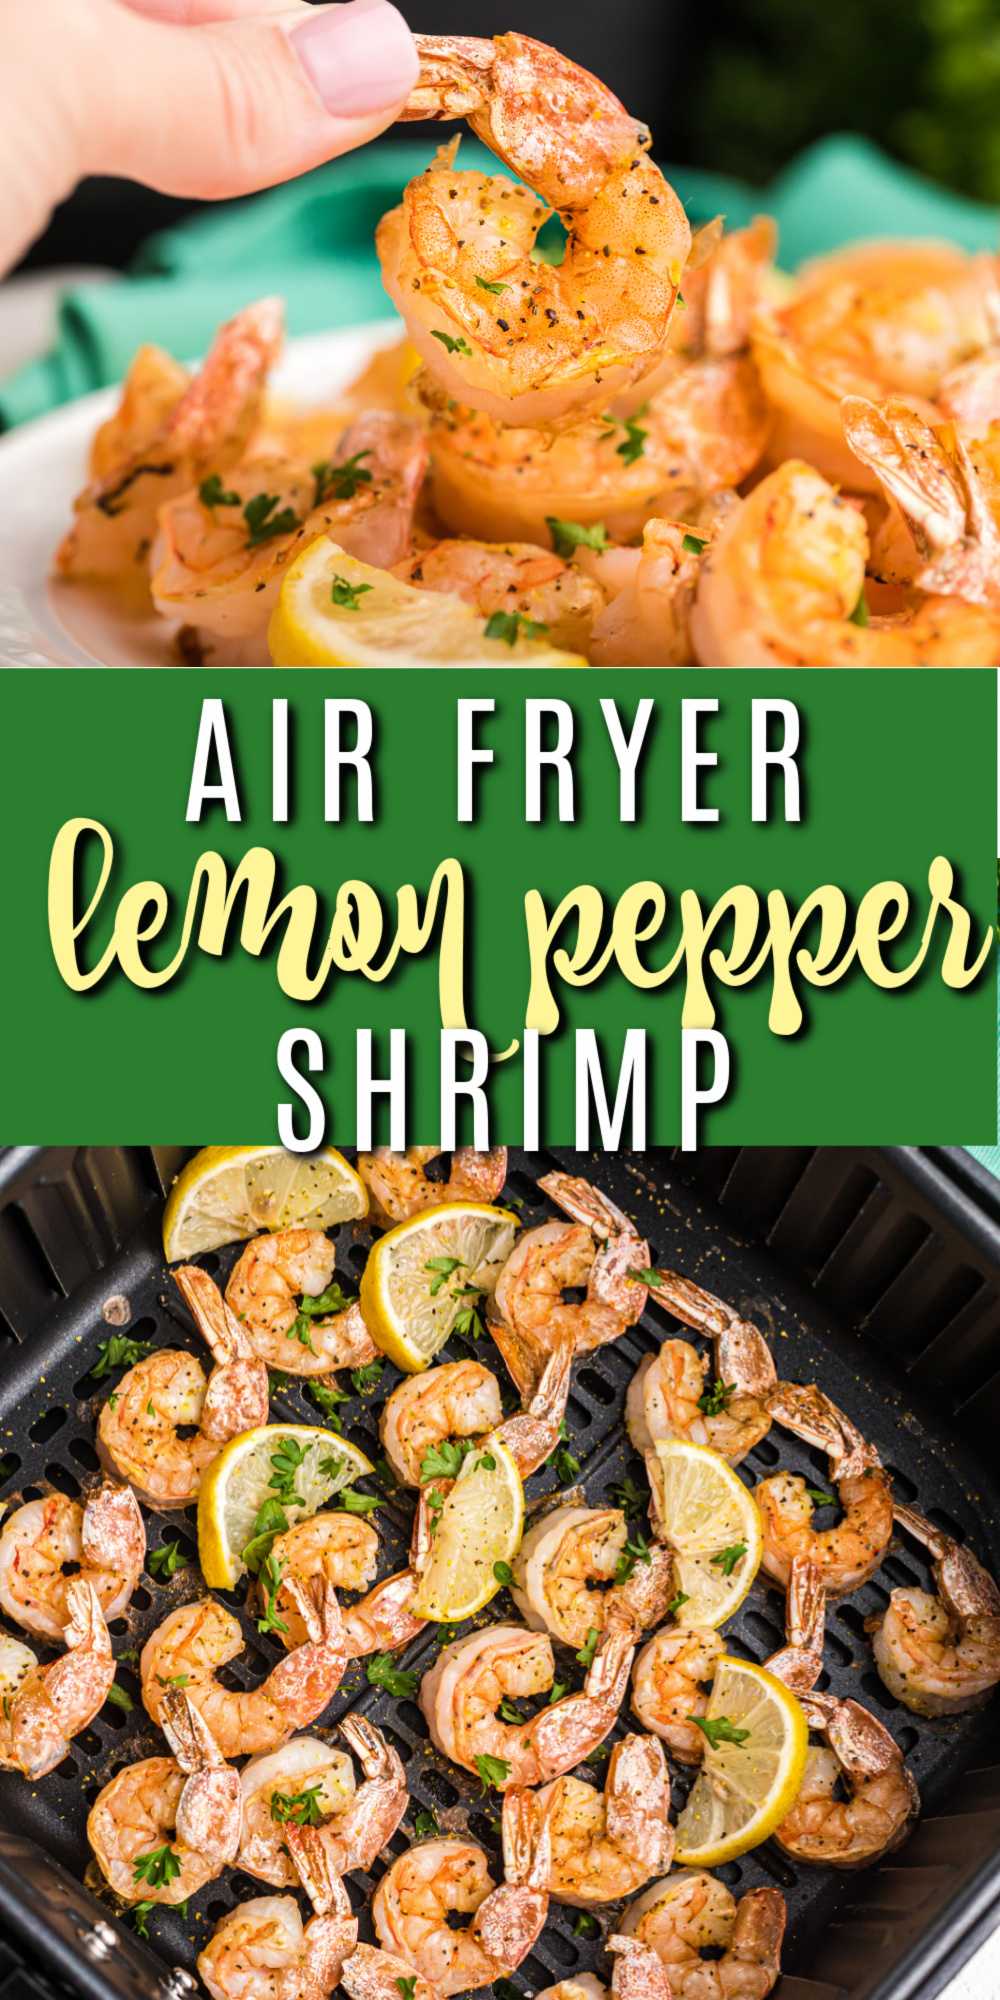 This lemon pepper air fryer shrimp recipe is one of my favorite healthy lunches and also makes the perfect delicious appetizer. You can use the shrimp over a bed of lettuce for a salad, or even in shrimp tacos. You can also eat them all by themselves! It's a light and low carb dish that's a personal favorite and made in just minutes.